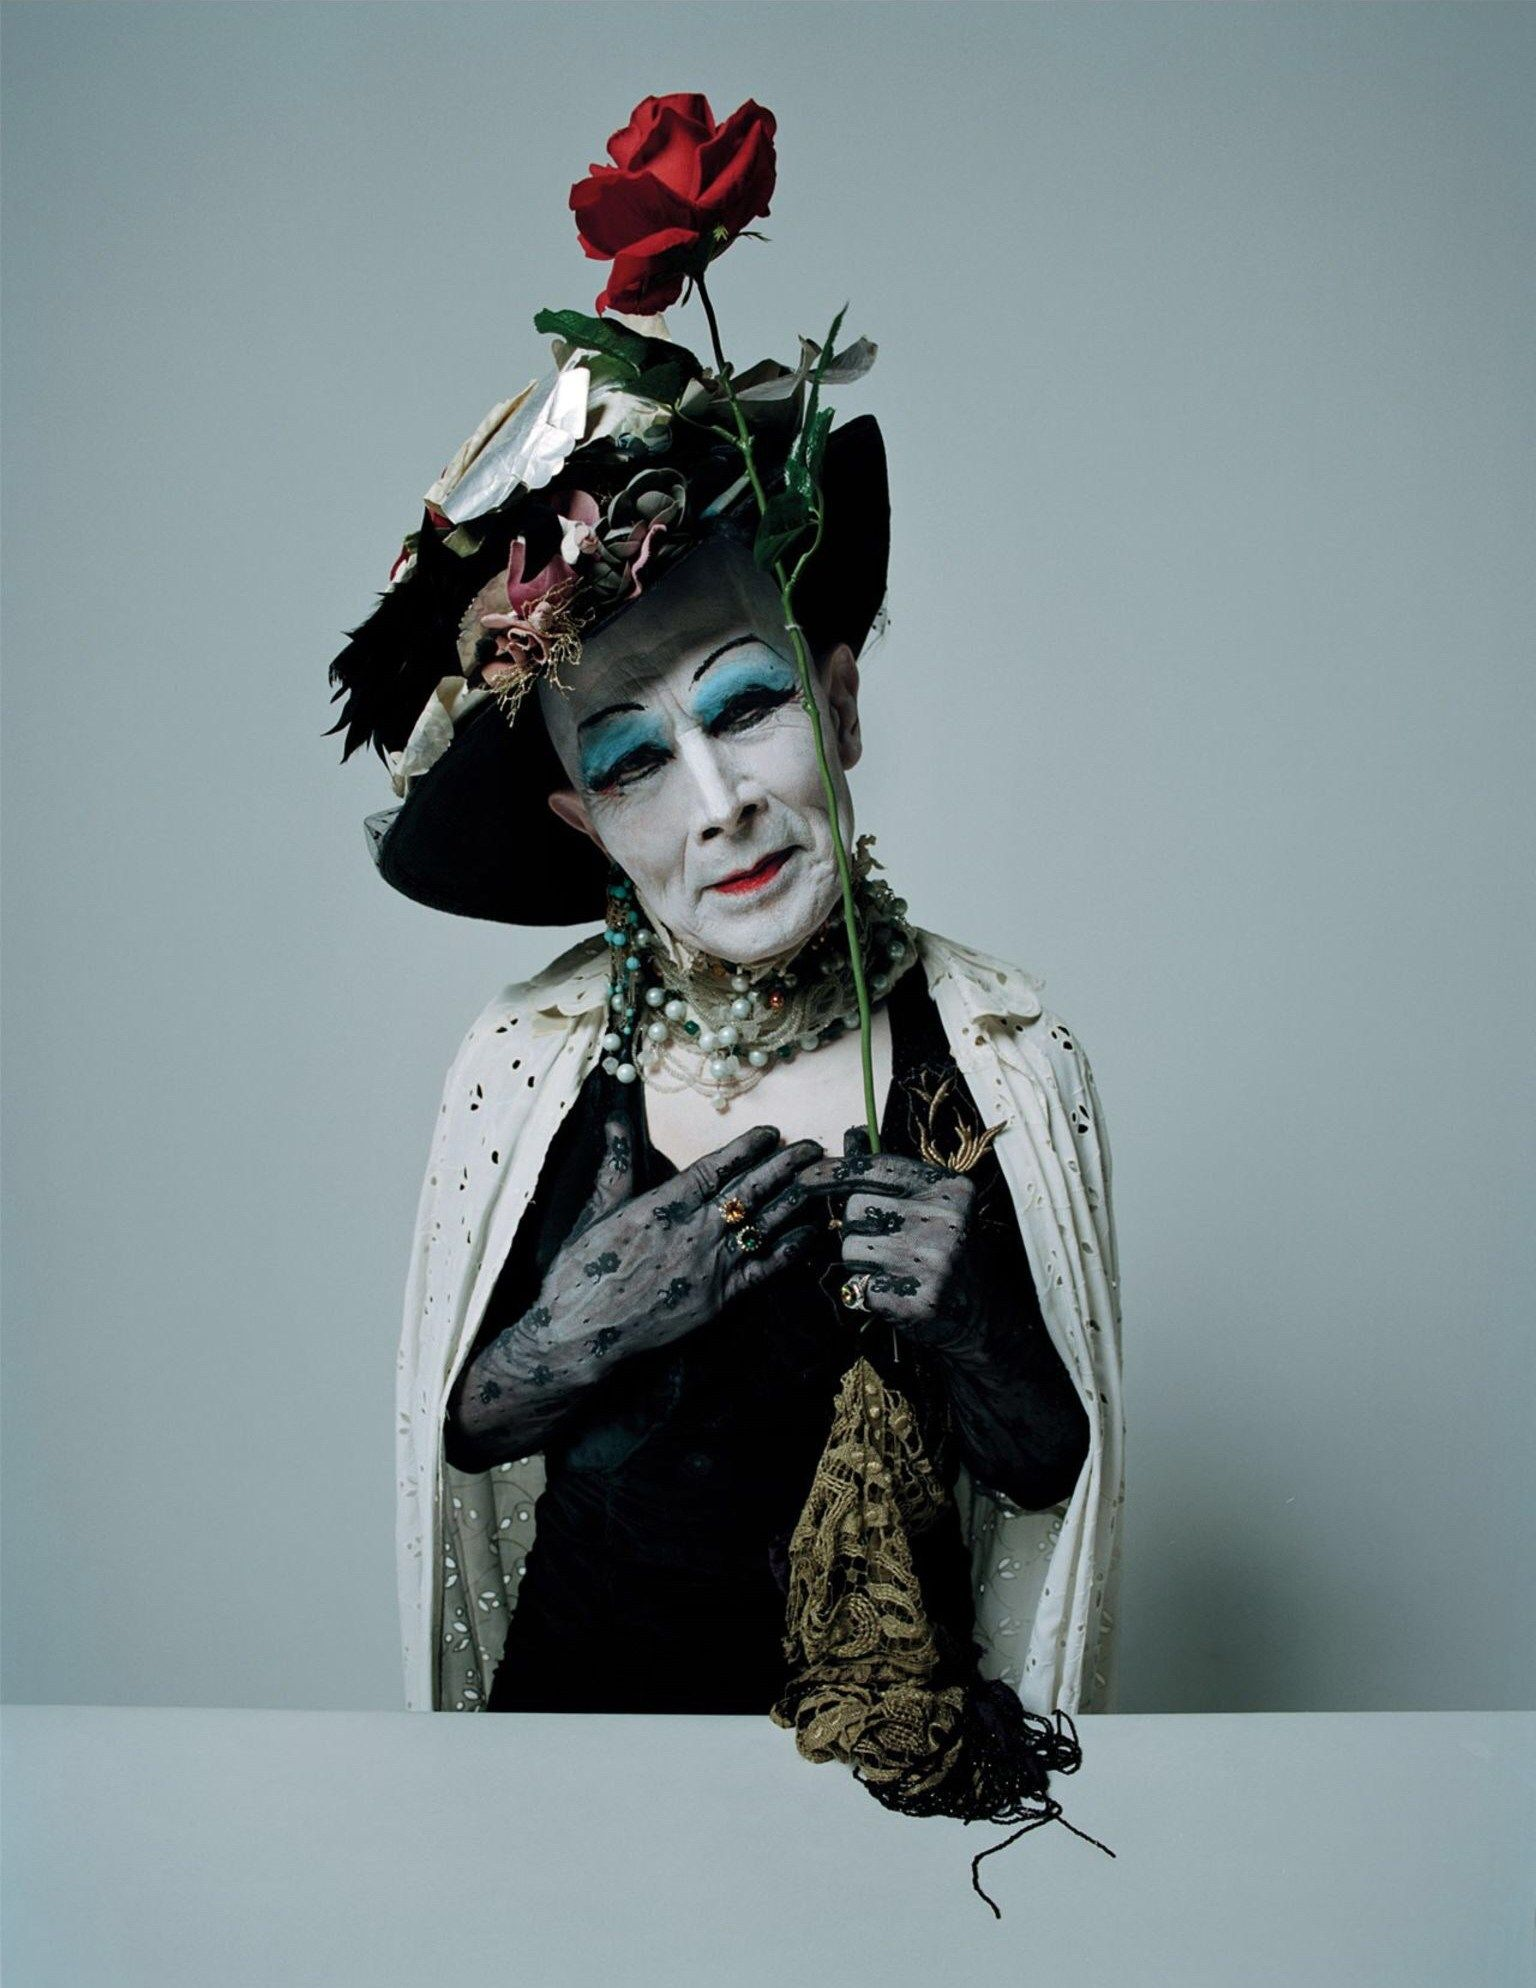 An artist of the floating world by tim walker for vogue